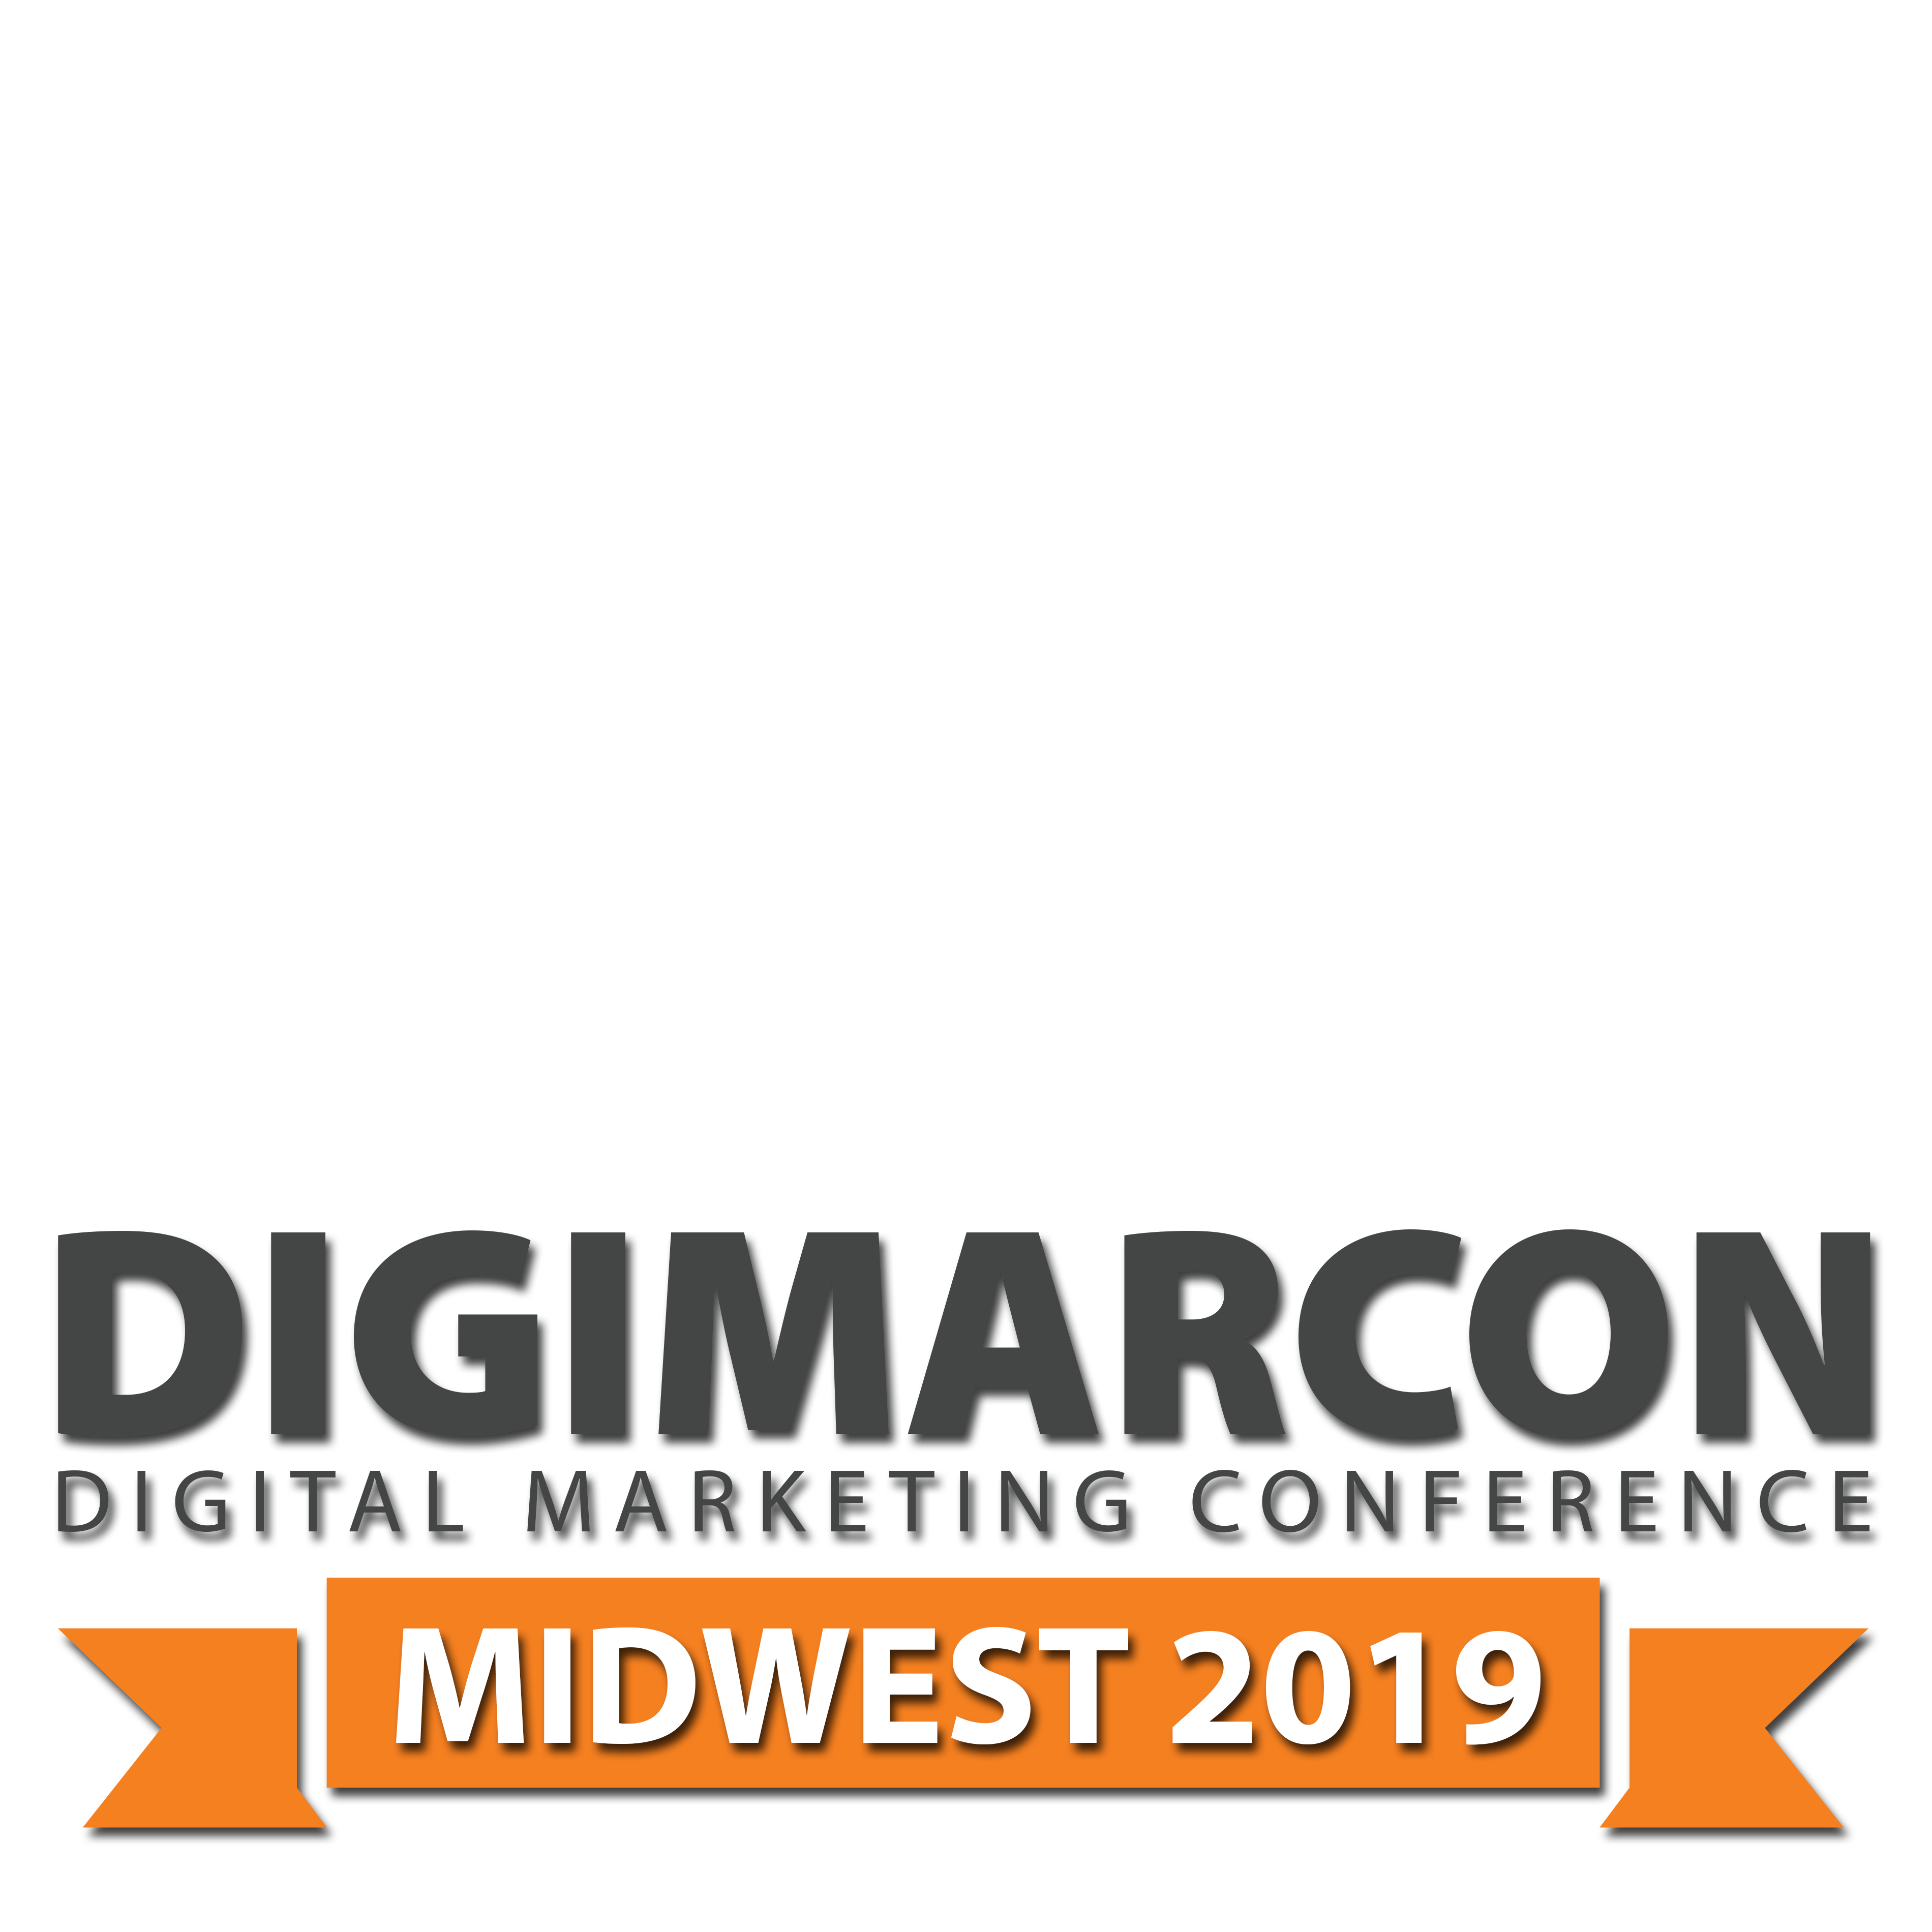 Png studios humbolt park near north ave and pulaski chicago il. Digimarcon midwest digital marketing